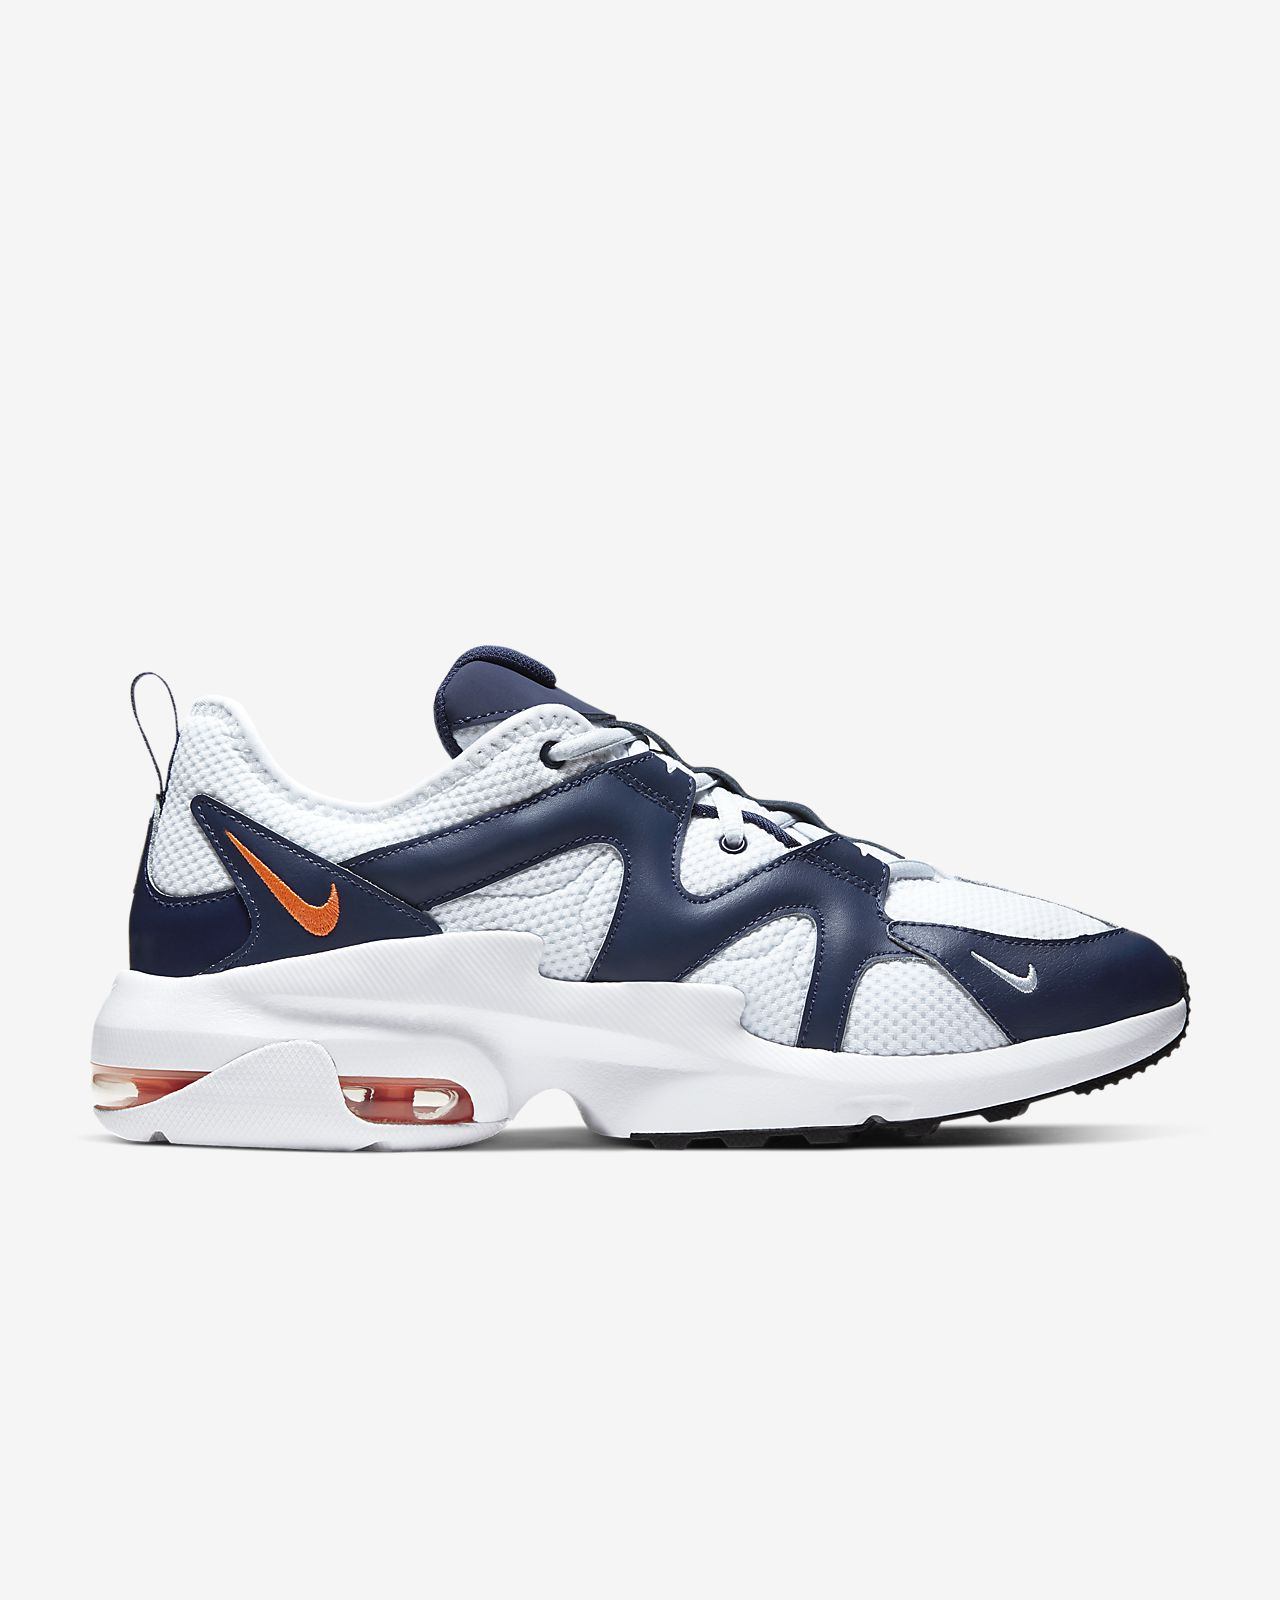 Chaussures de Running Homme Nike Air Max Graviton Chaussures Homme